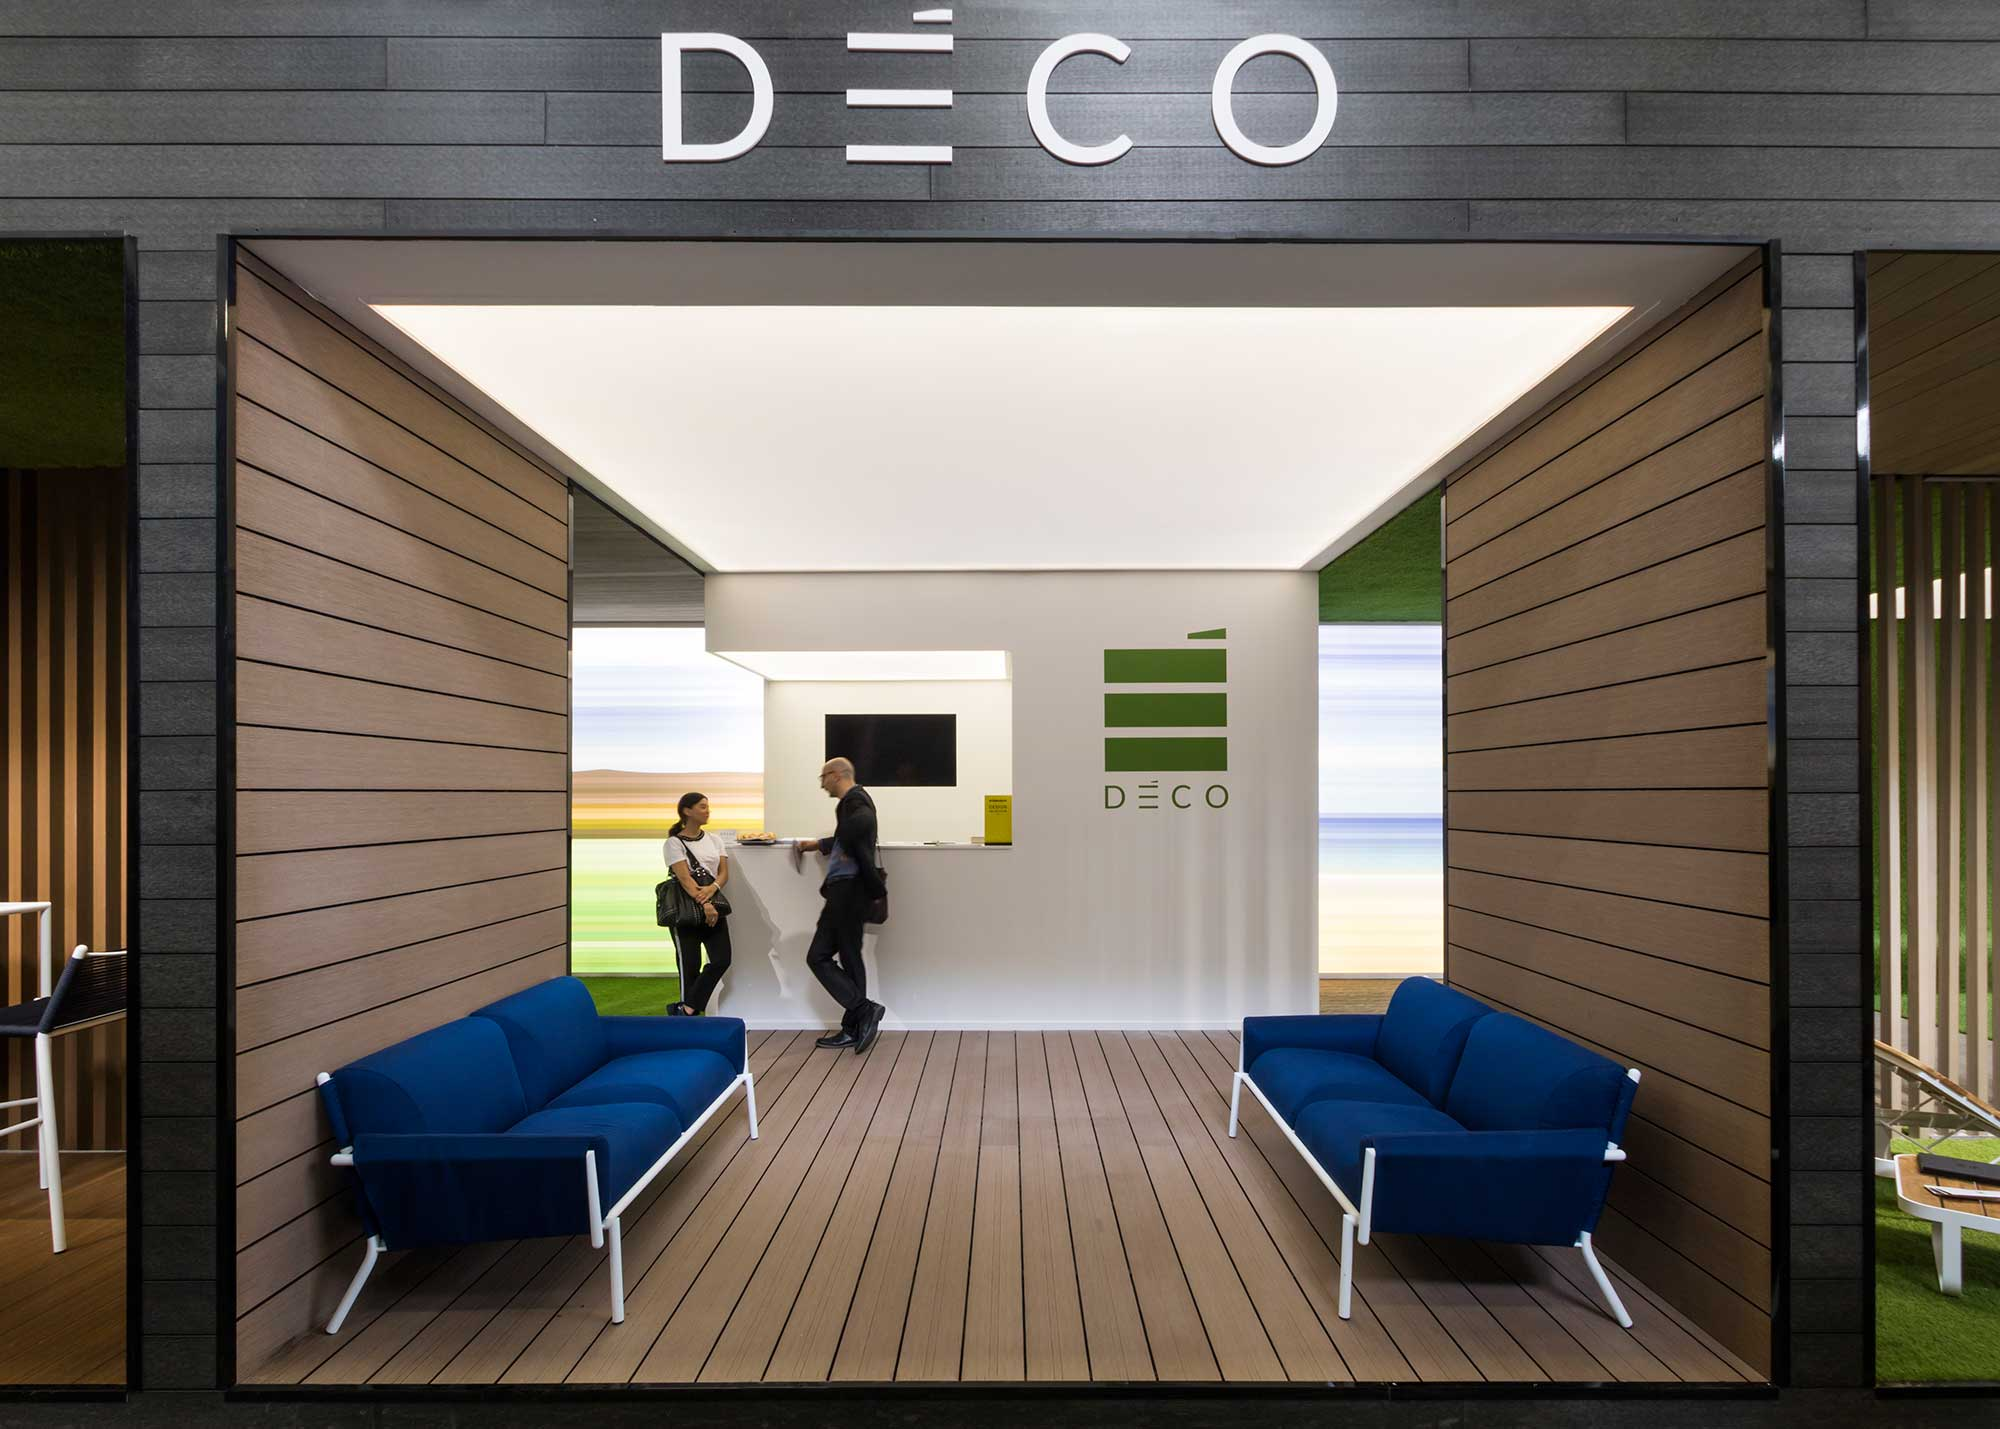 Stand Cersaie Rooms Deco, architecture